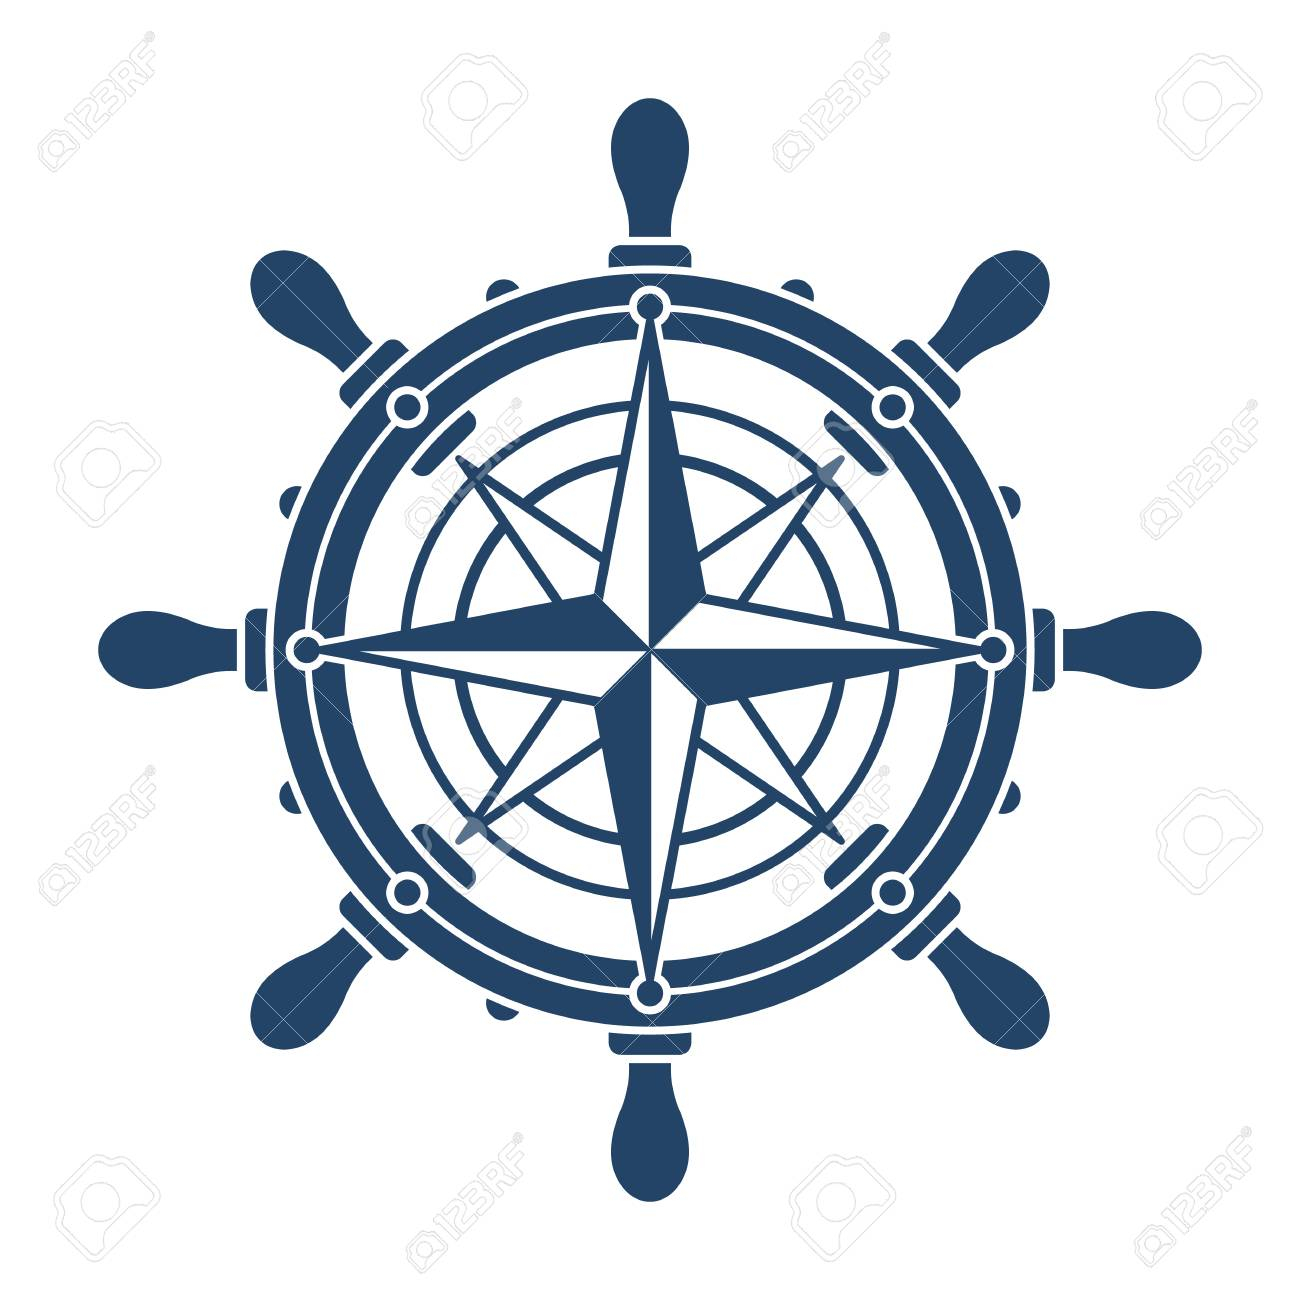 Ship Steering Wheel And Compass Rose Navigation Symbol Or Logo Royalty Free Cliparts Vectors And Stock Illustration Image 97494330